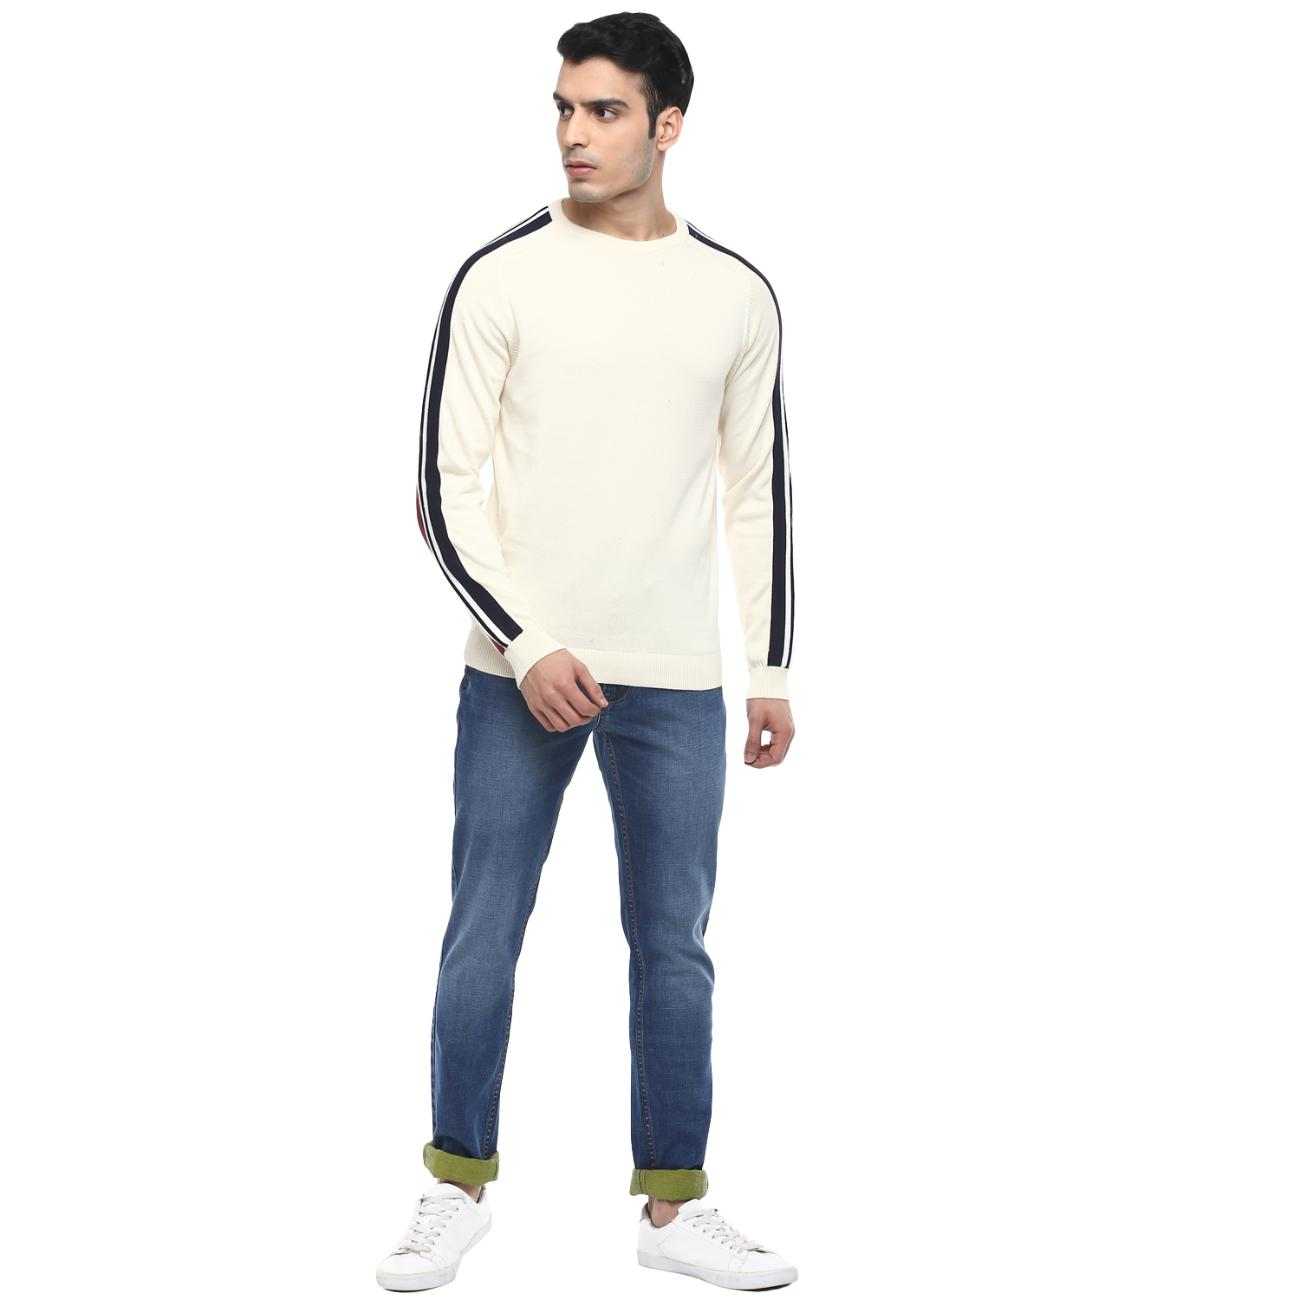 Shop Casual Off-white Sweater for Men